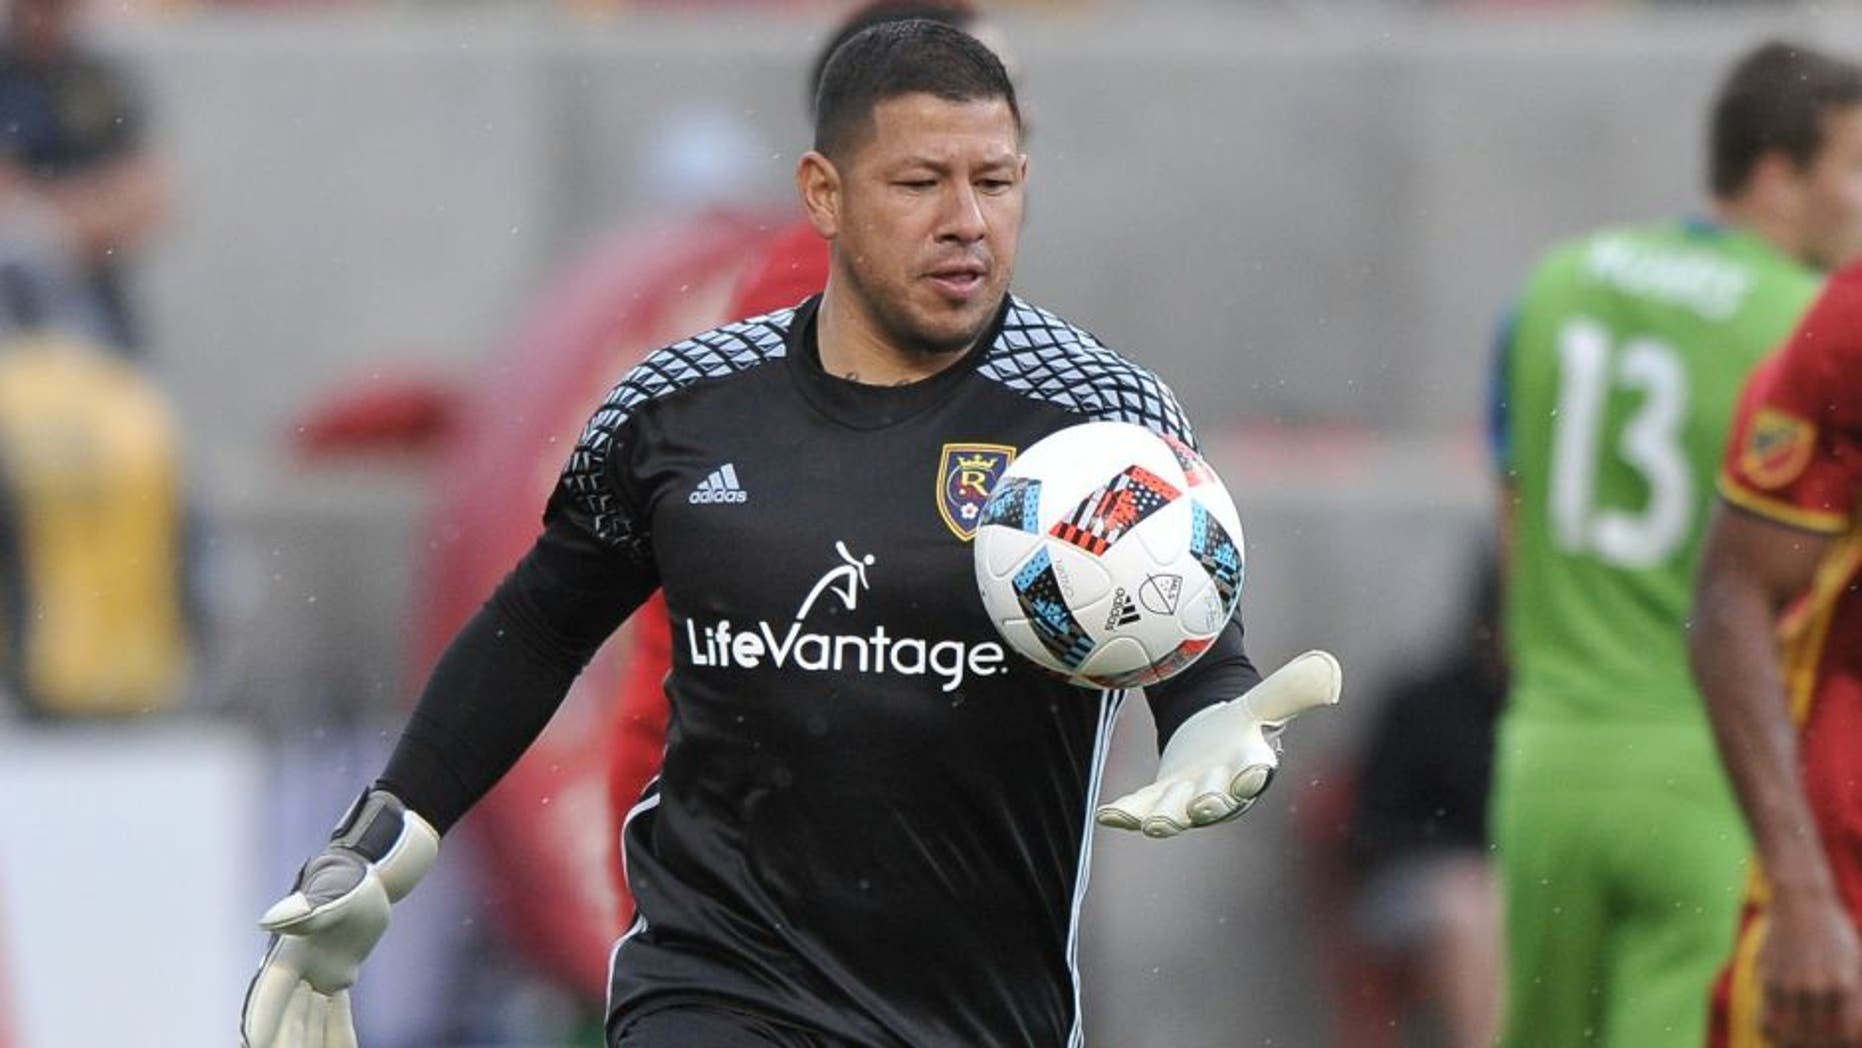 SANDY, UT - MARCH 12: Goalie Nick Rimando #18 of Real Salt Lake eyes the ball in the game against Seattle Sounders FC at Rio Tinto Stadium on March 12, 2016 in Sandy, Utah. (Photo by Gene Sweeney Jr/Getty Images)